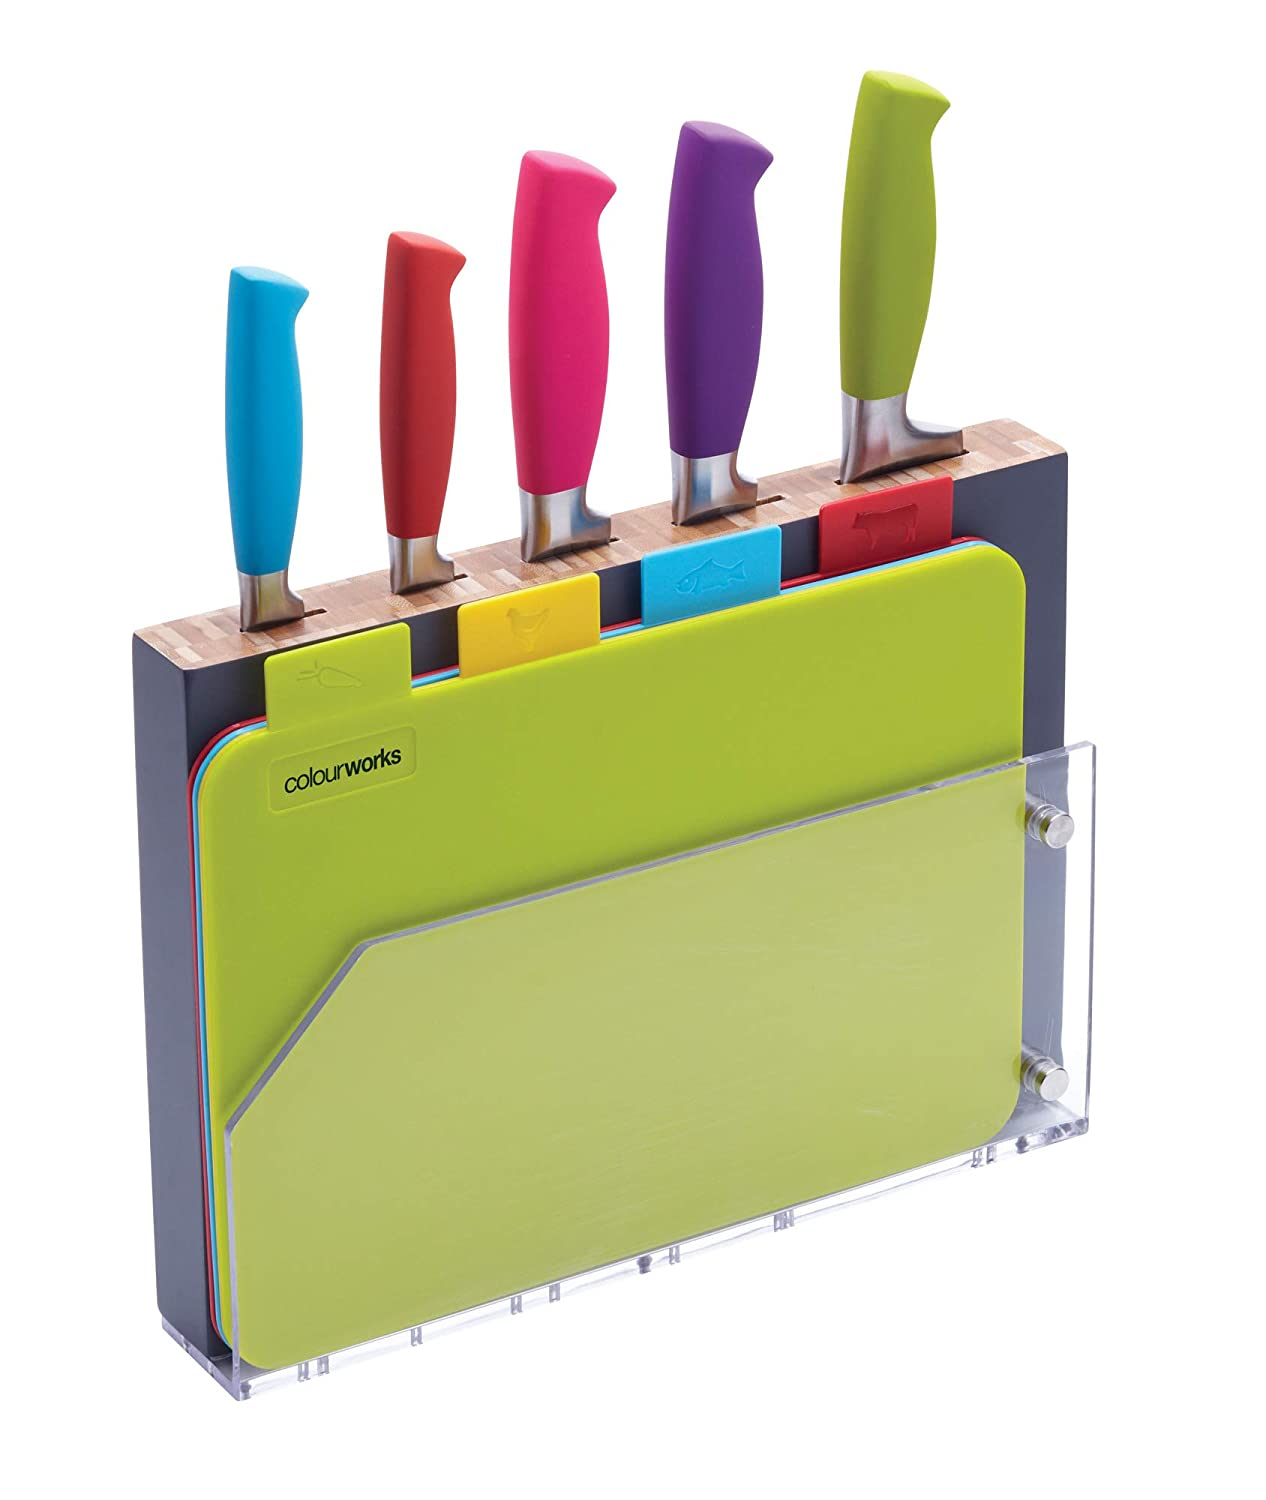 KitchenCraft Colourworks 5 Piece Easy Grip Knife Set with Storage Block Kitchen Craft CWKNB20